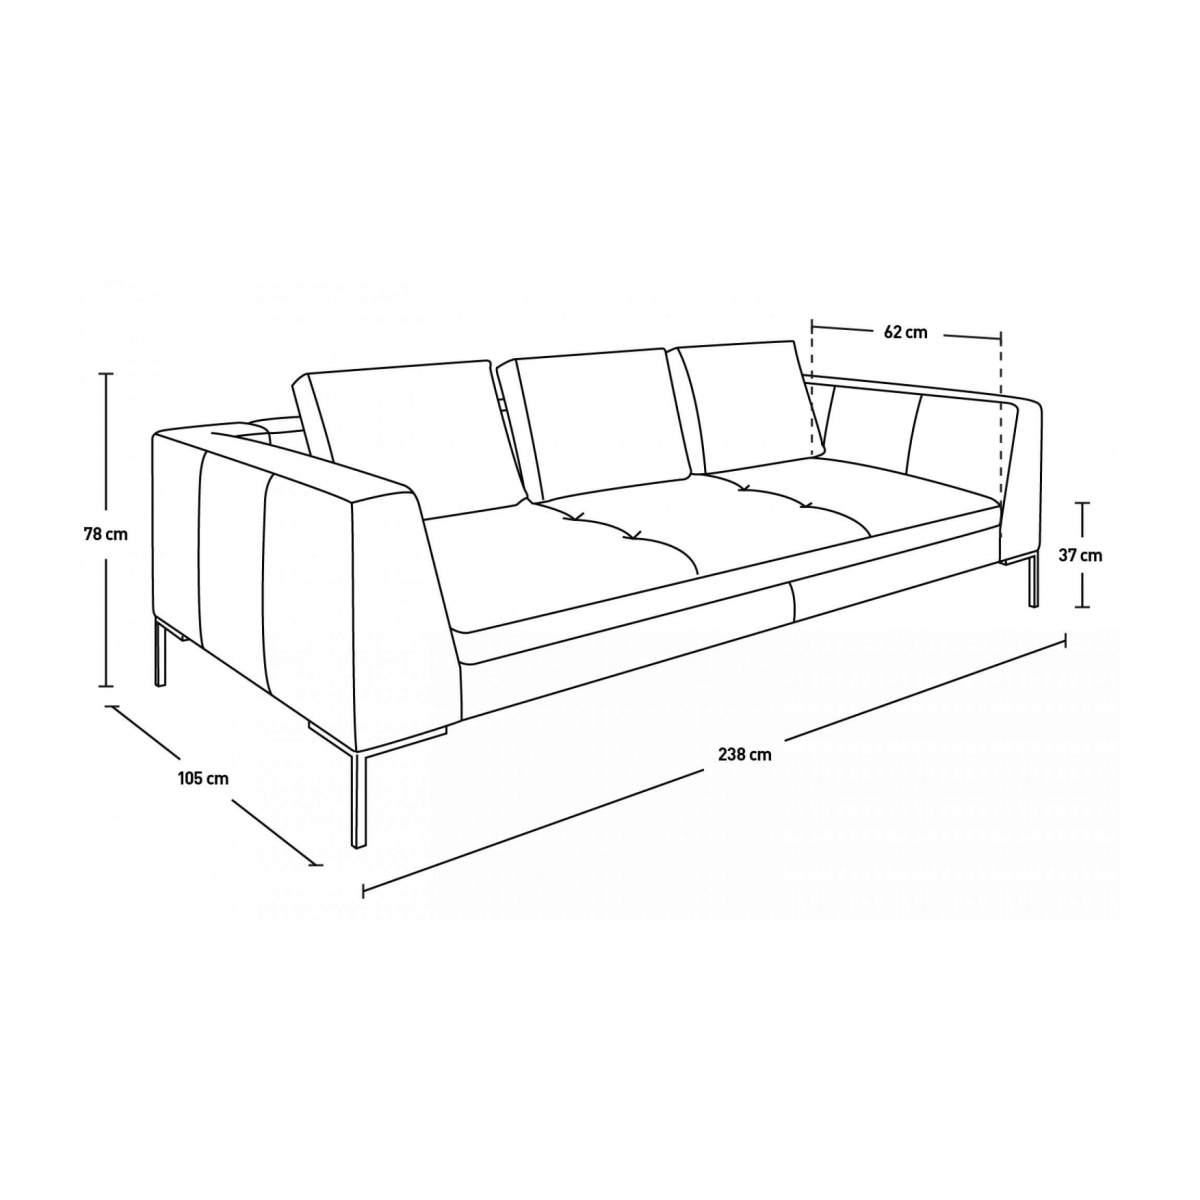 3 seater sofa in Eton veined leather, stone n°9